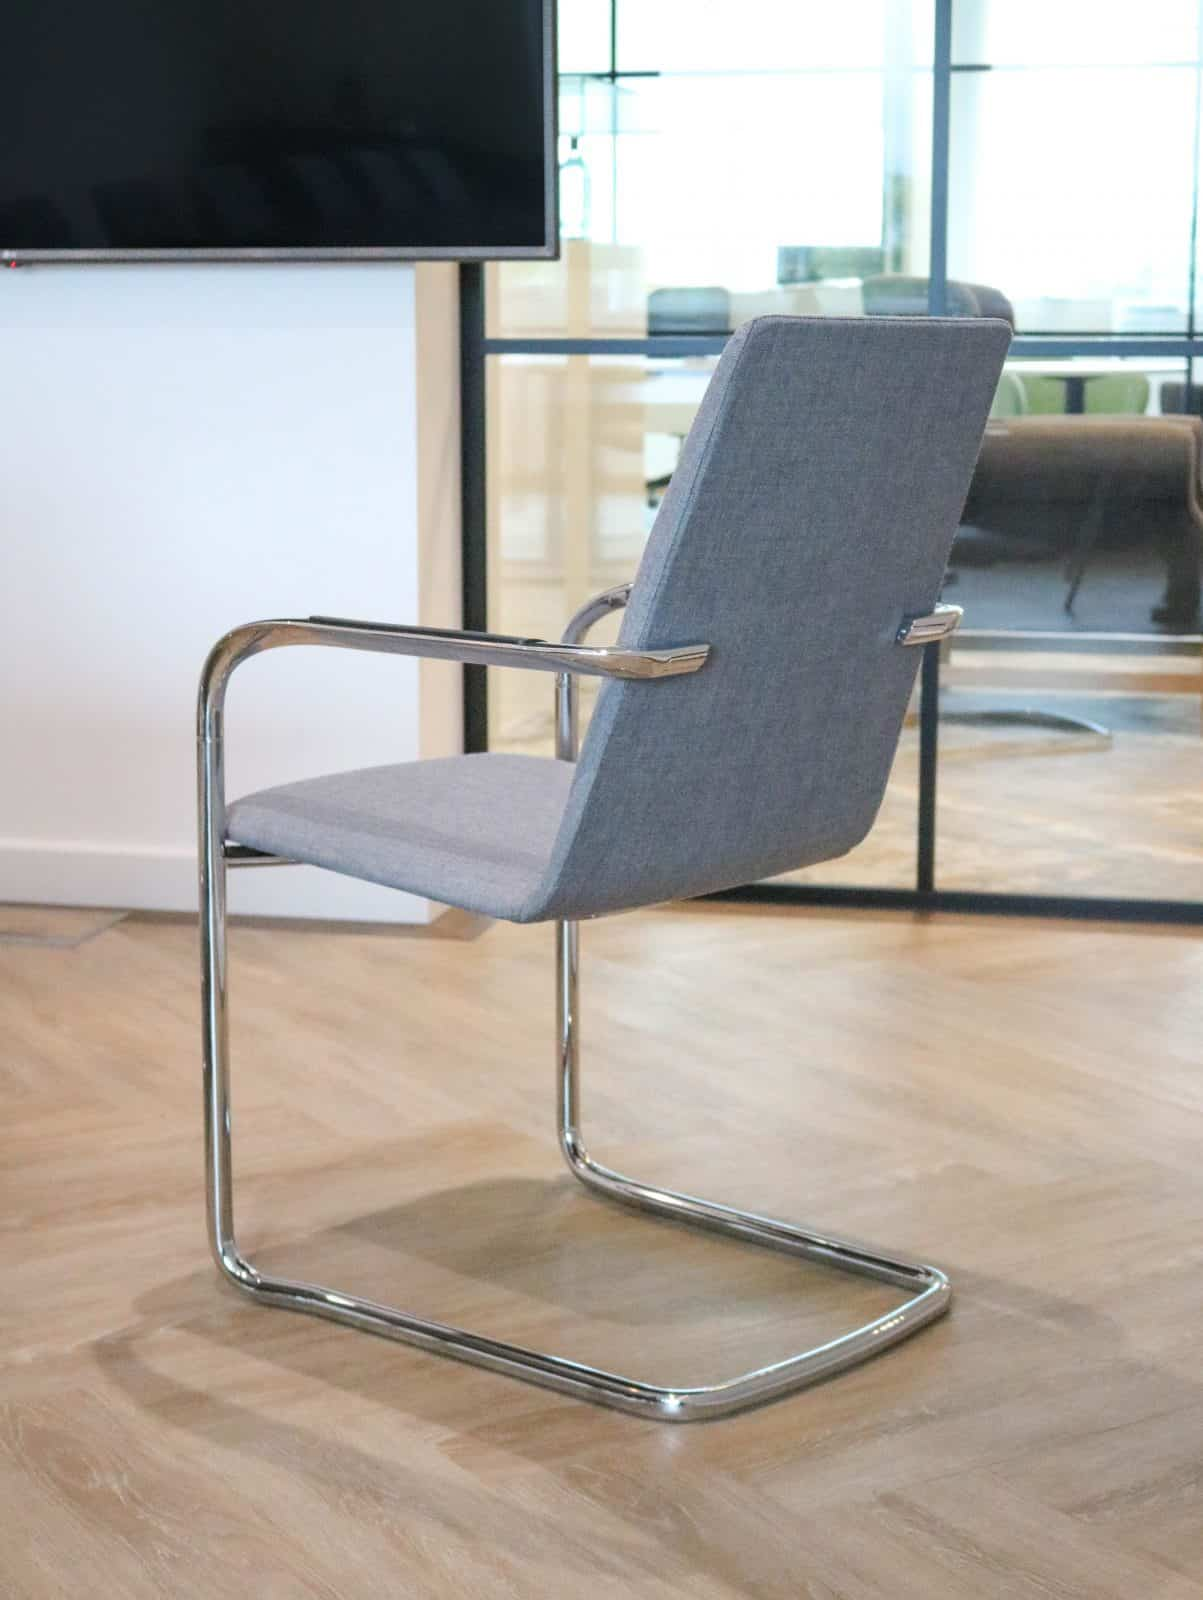 Mi Chair - Reach Table (7)